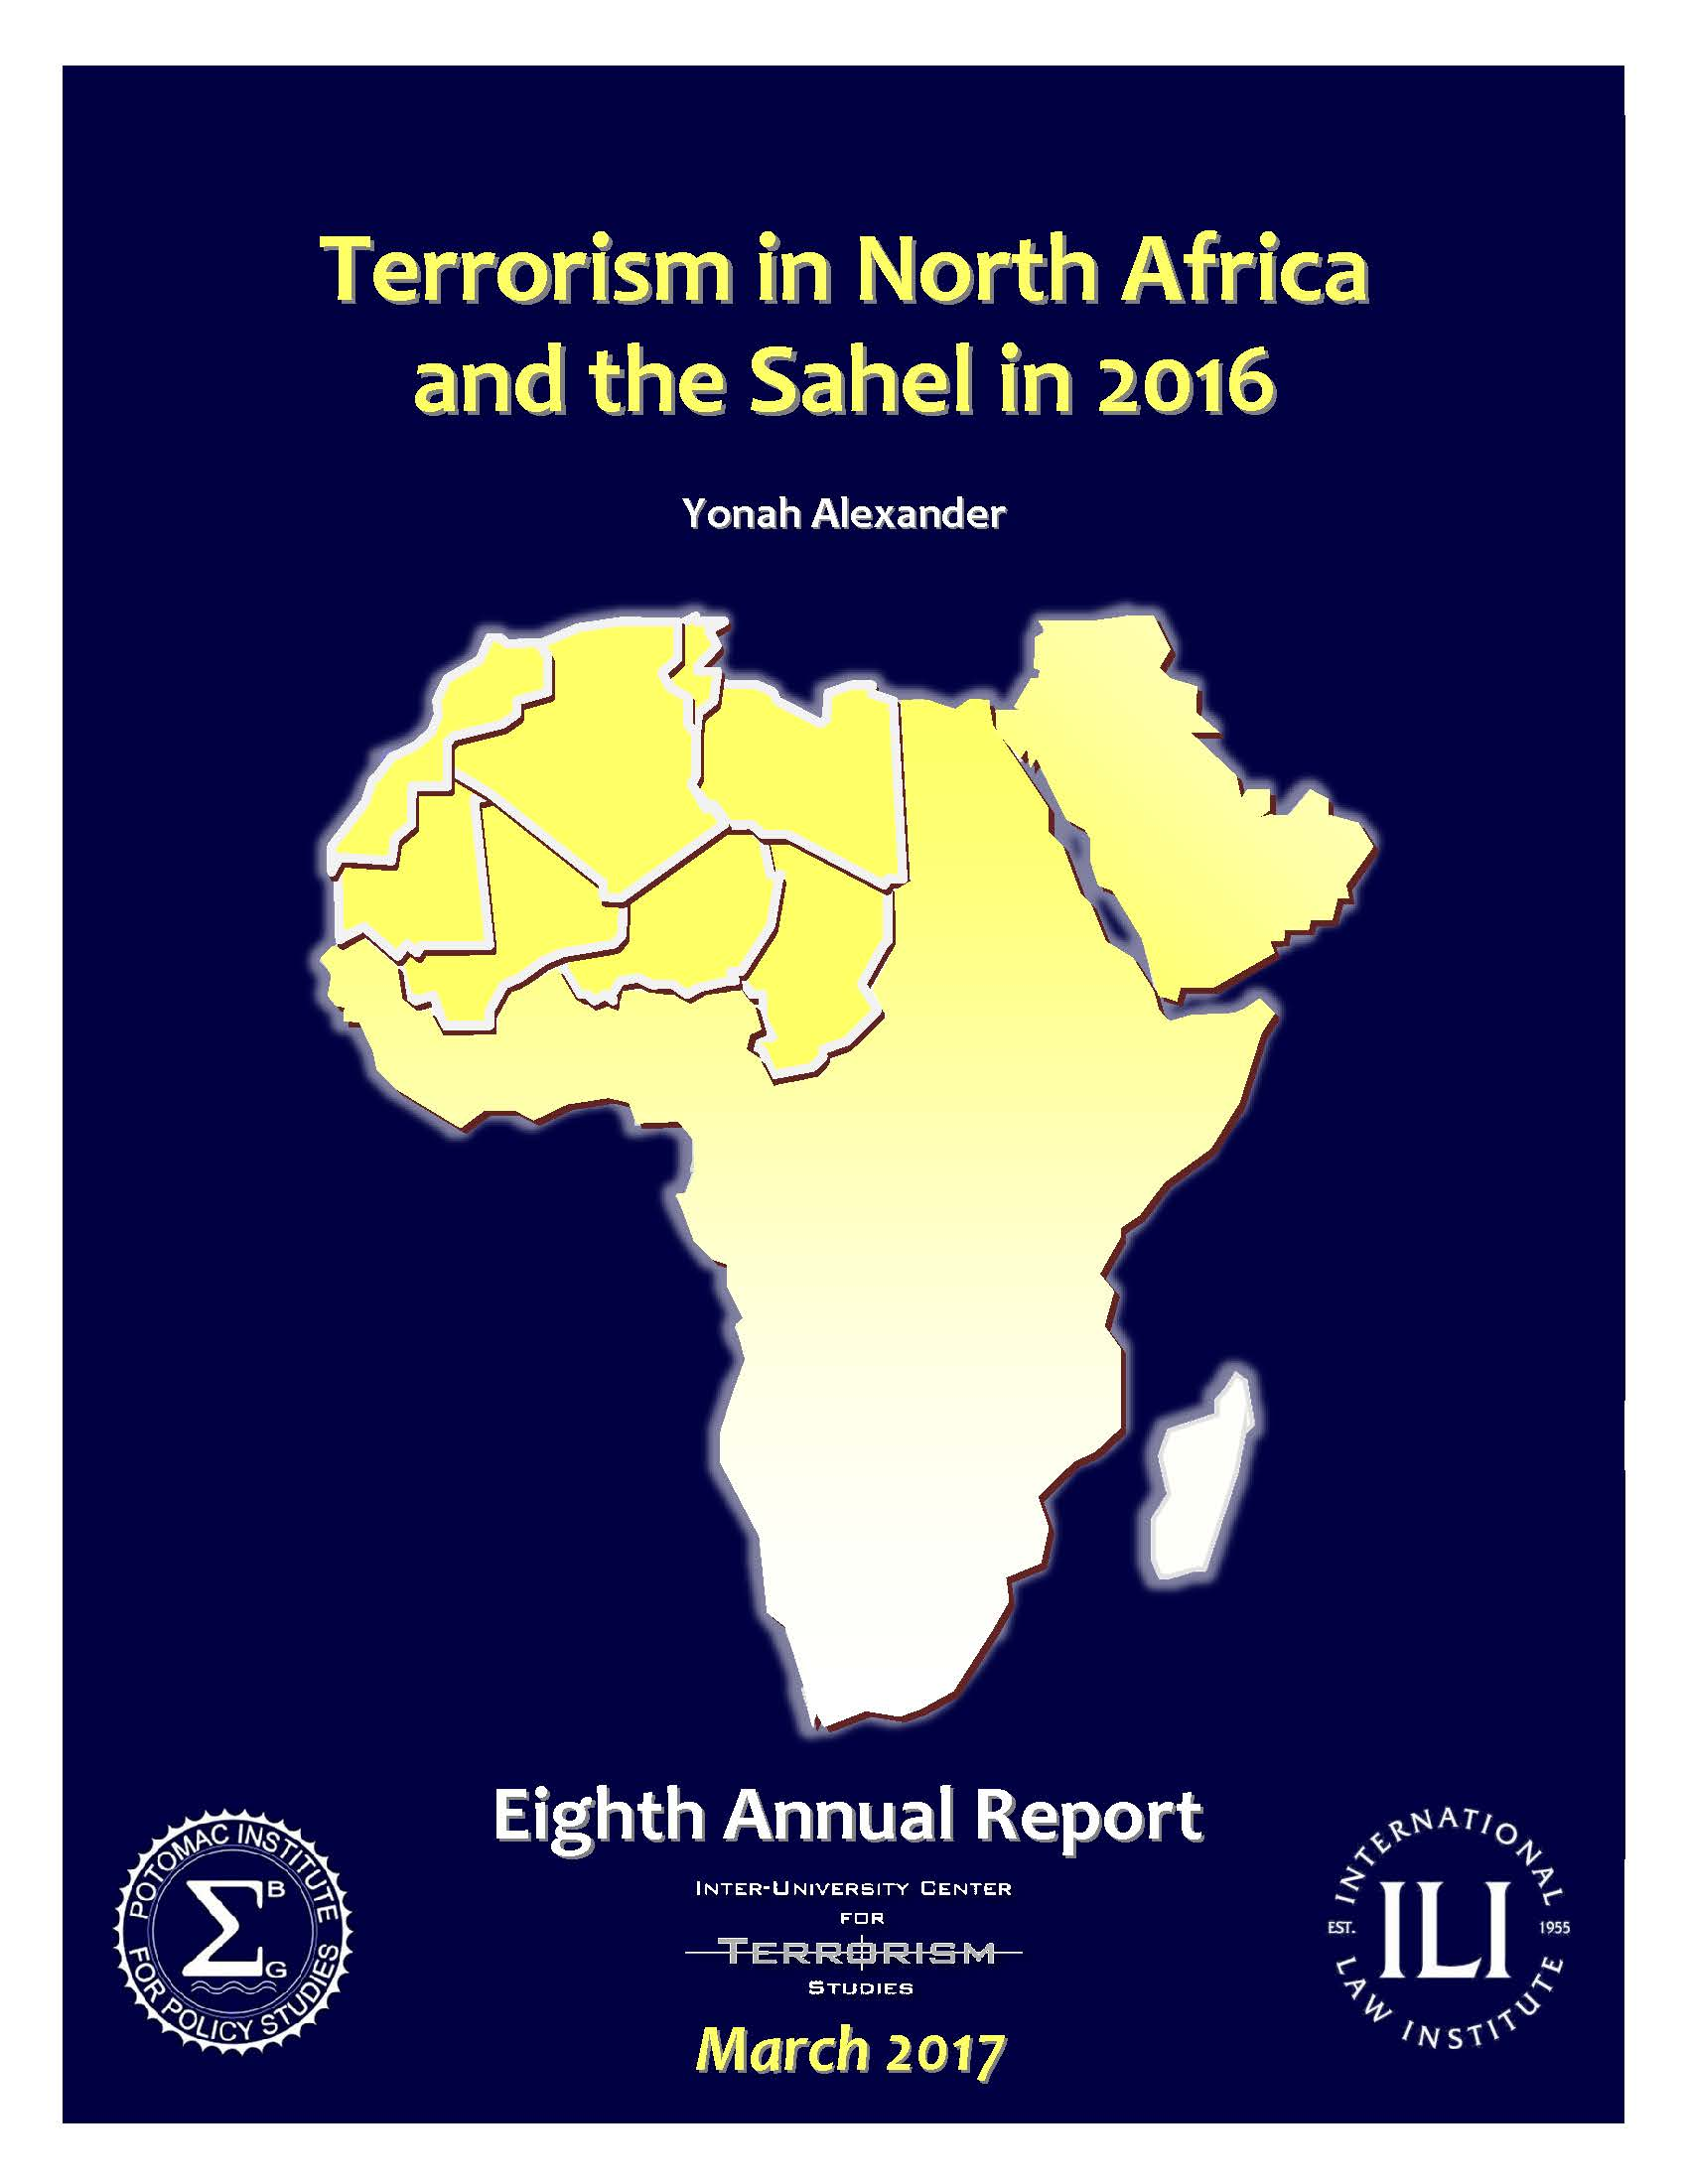 Terrorism in North Africa and the Sahel in 2016